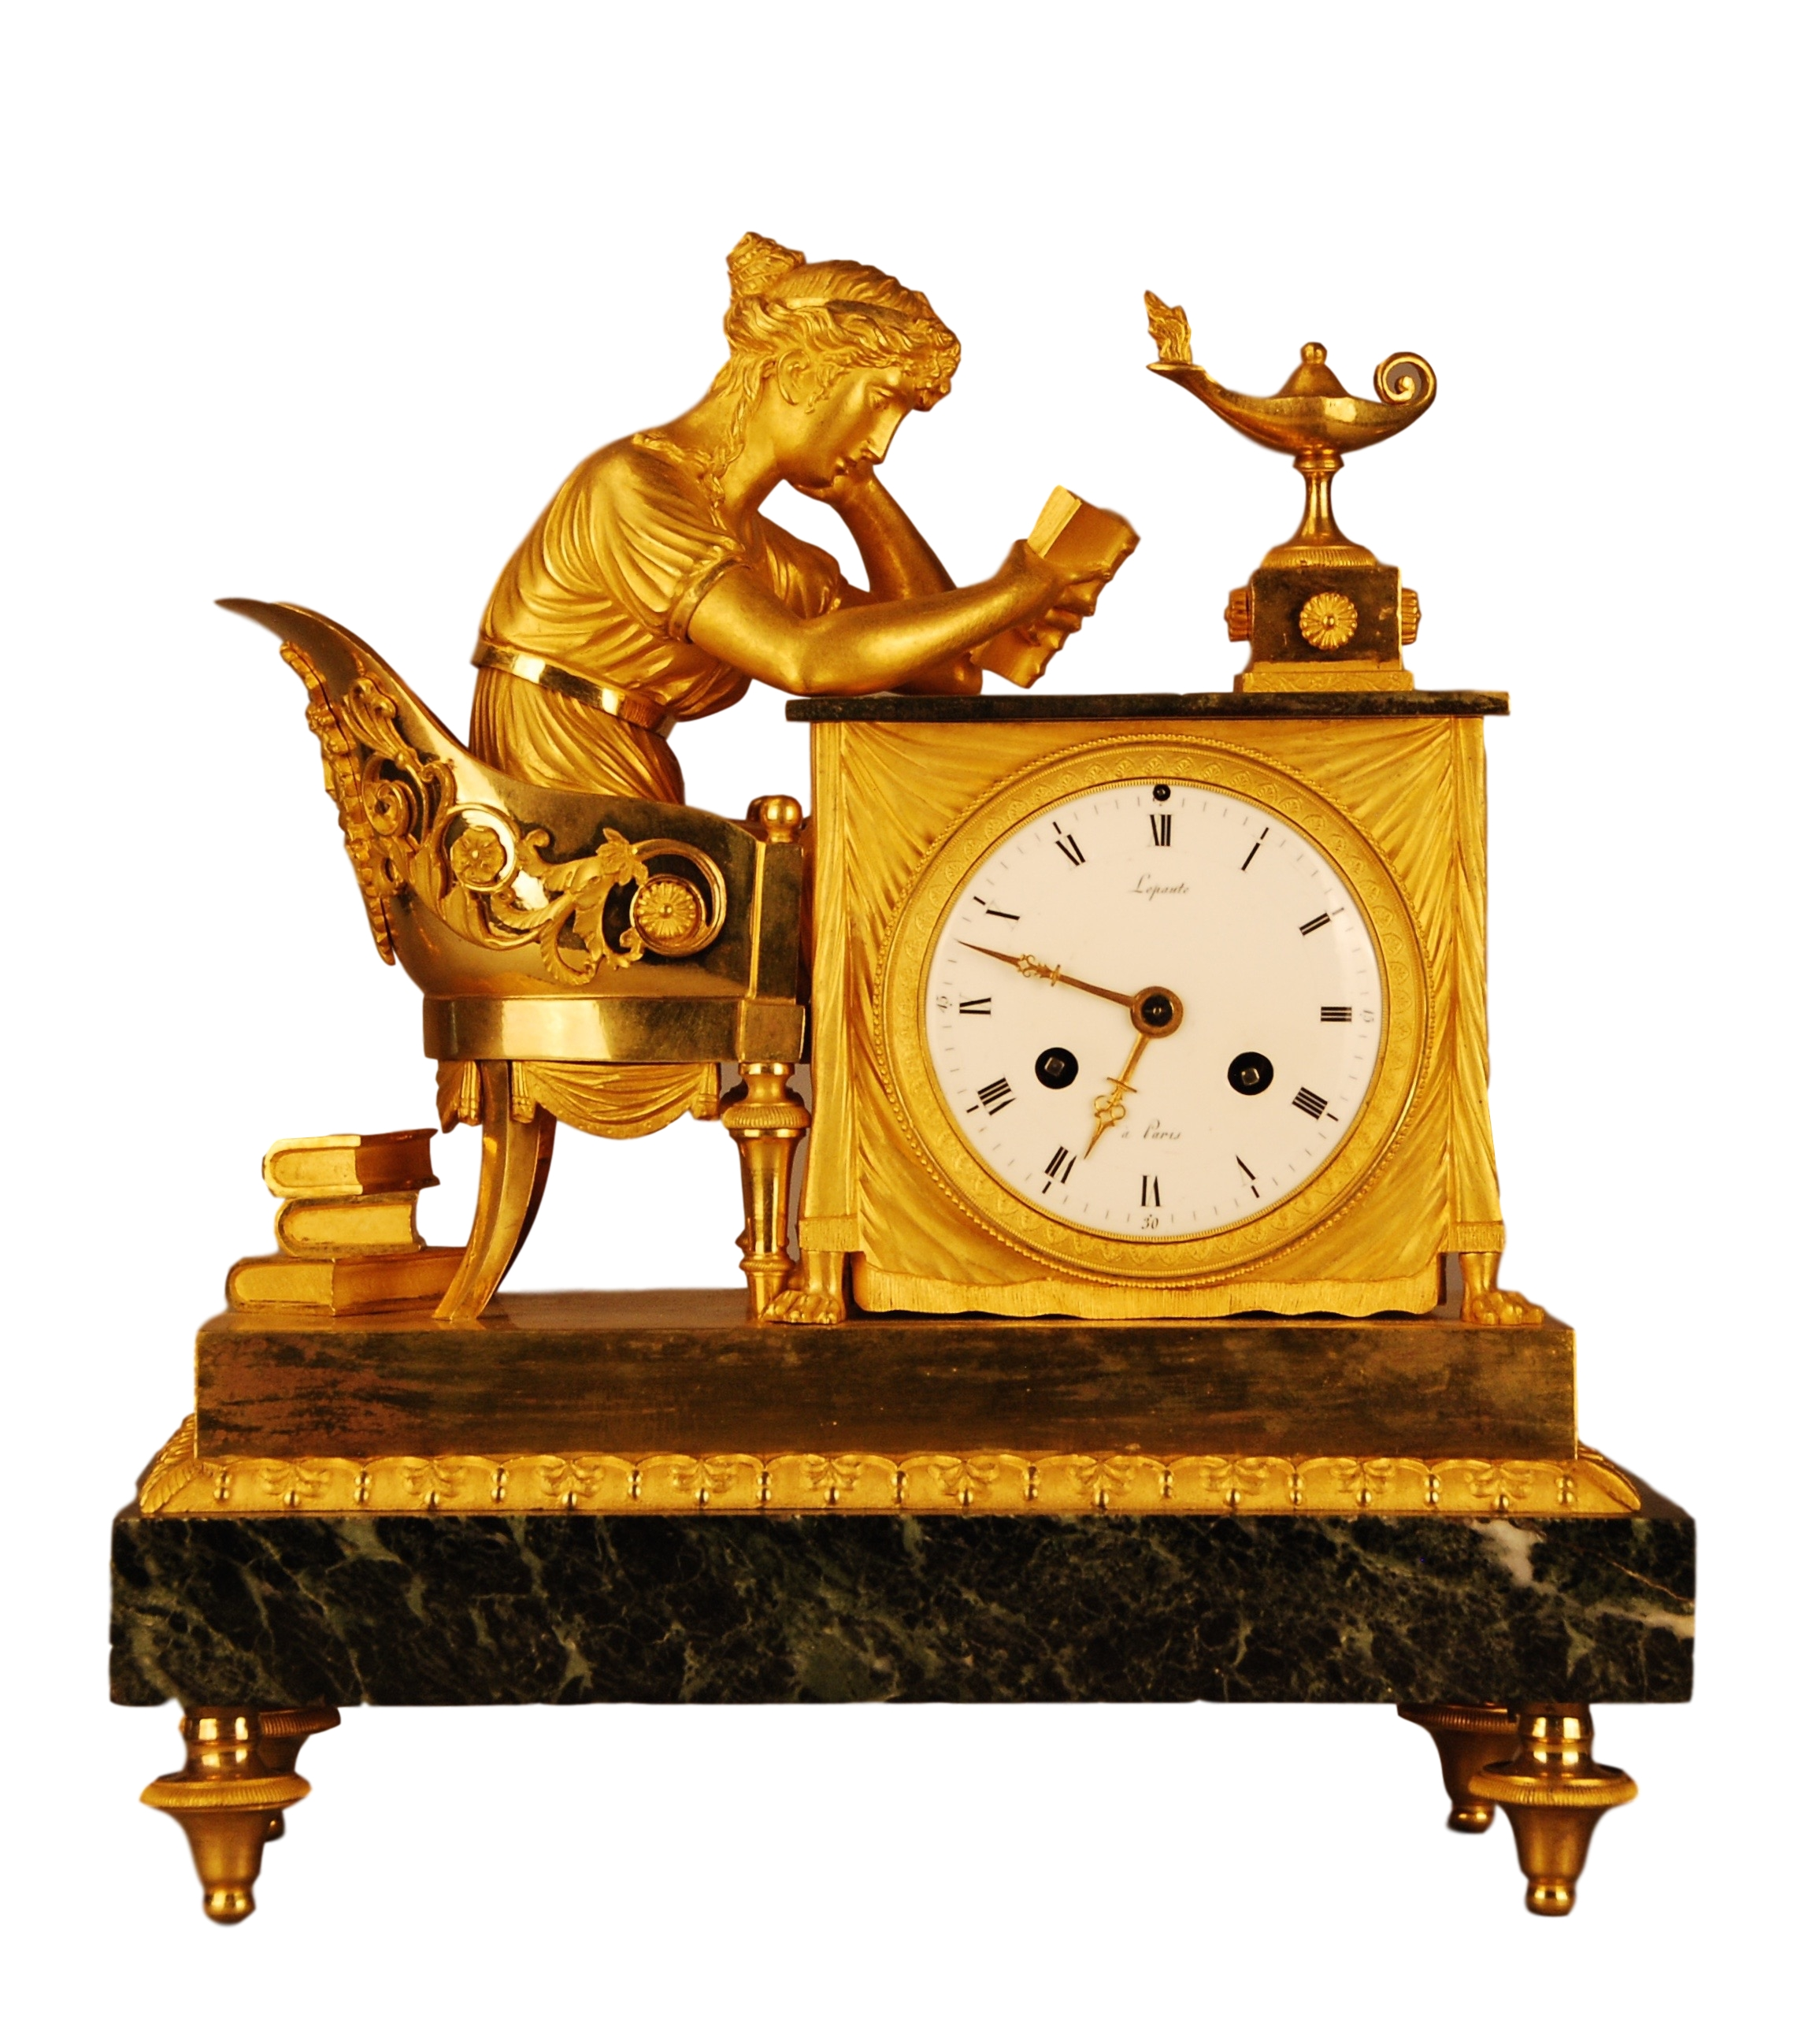 French mantel clock, 'Lectura', signed 'Lepaute - Paris', ca. 1808.